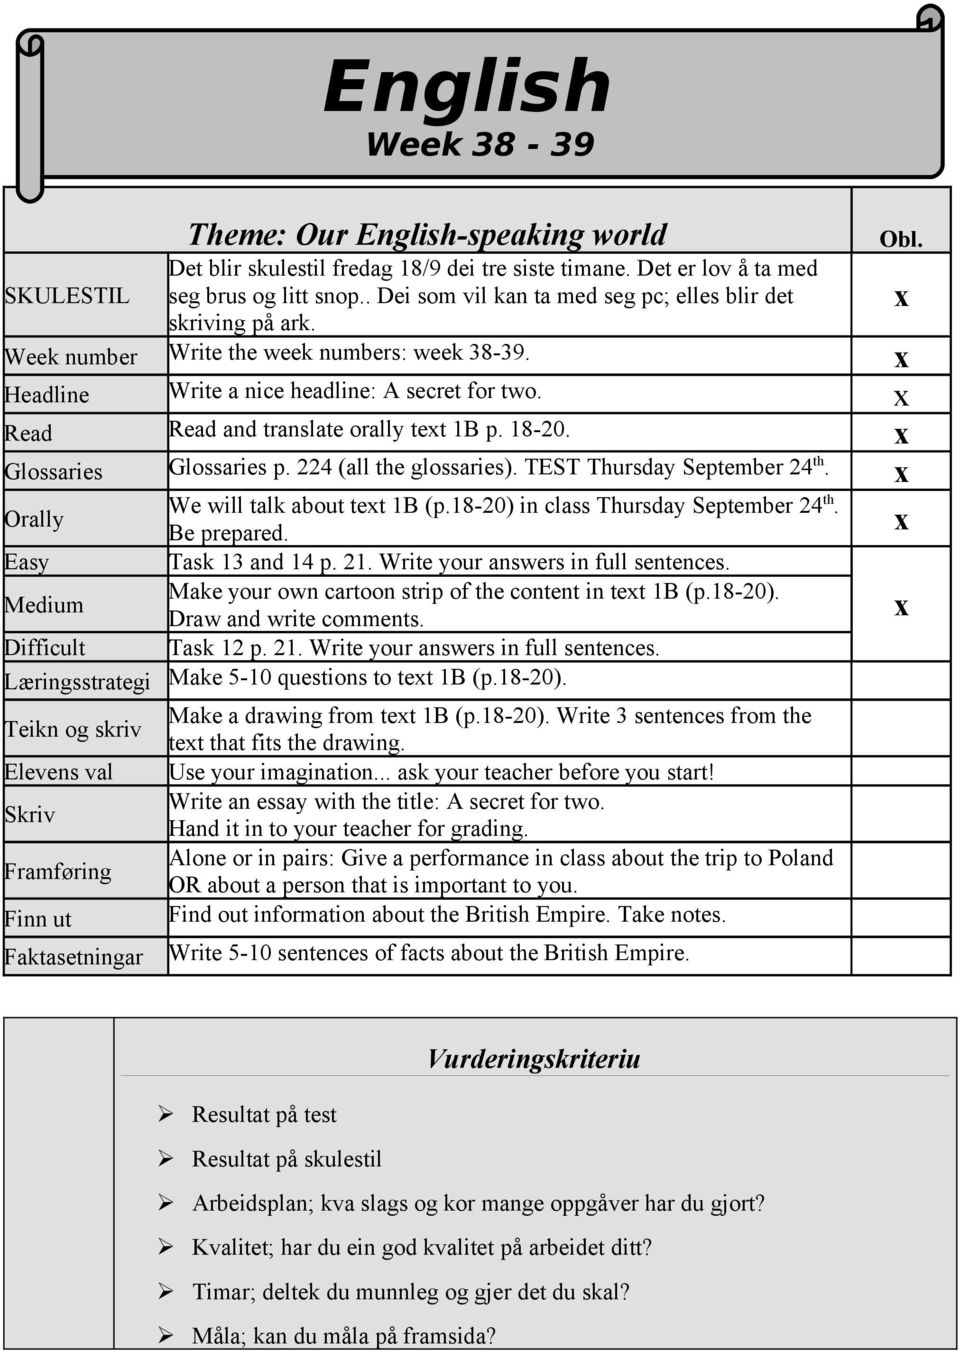 x Read Read and translate orally text 1B p. 18-20. x Glossaries Glossaries p. 224 (all the glossaries). TEST Thursday September 24 th. x Orally We will talk about text 1B (p.